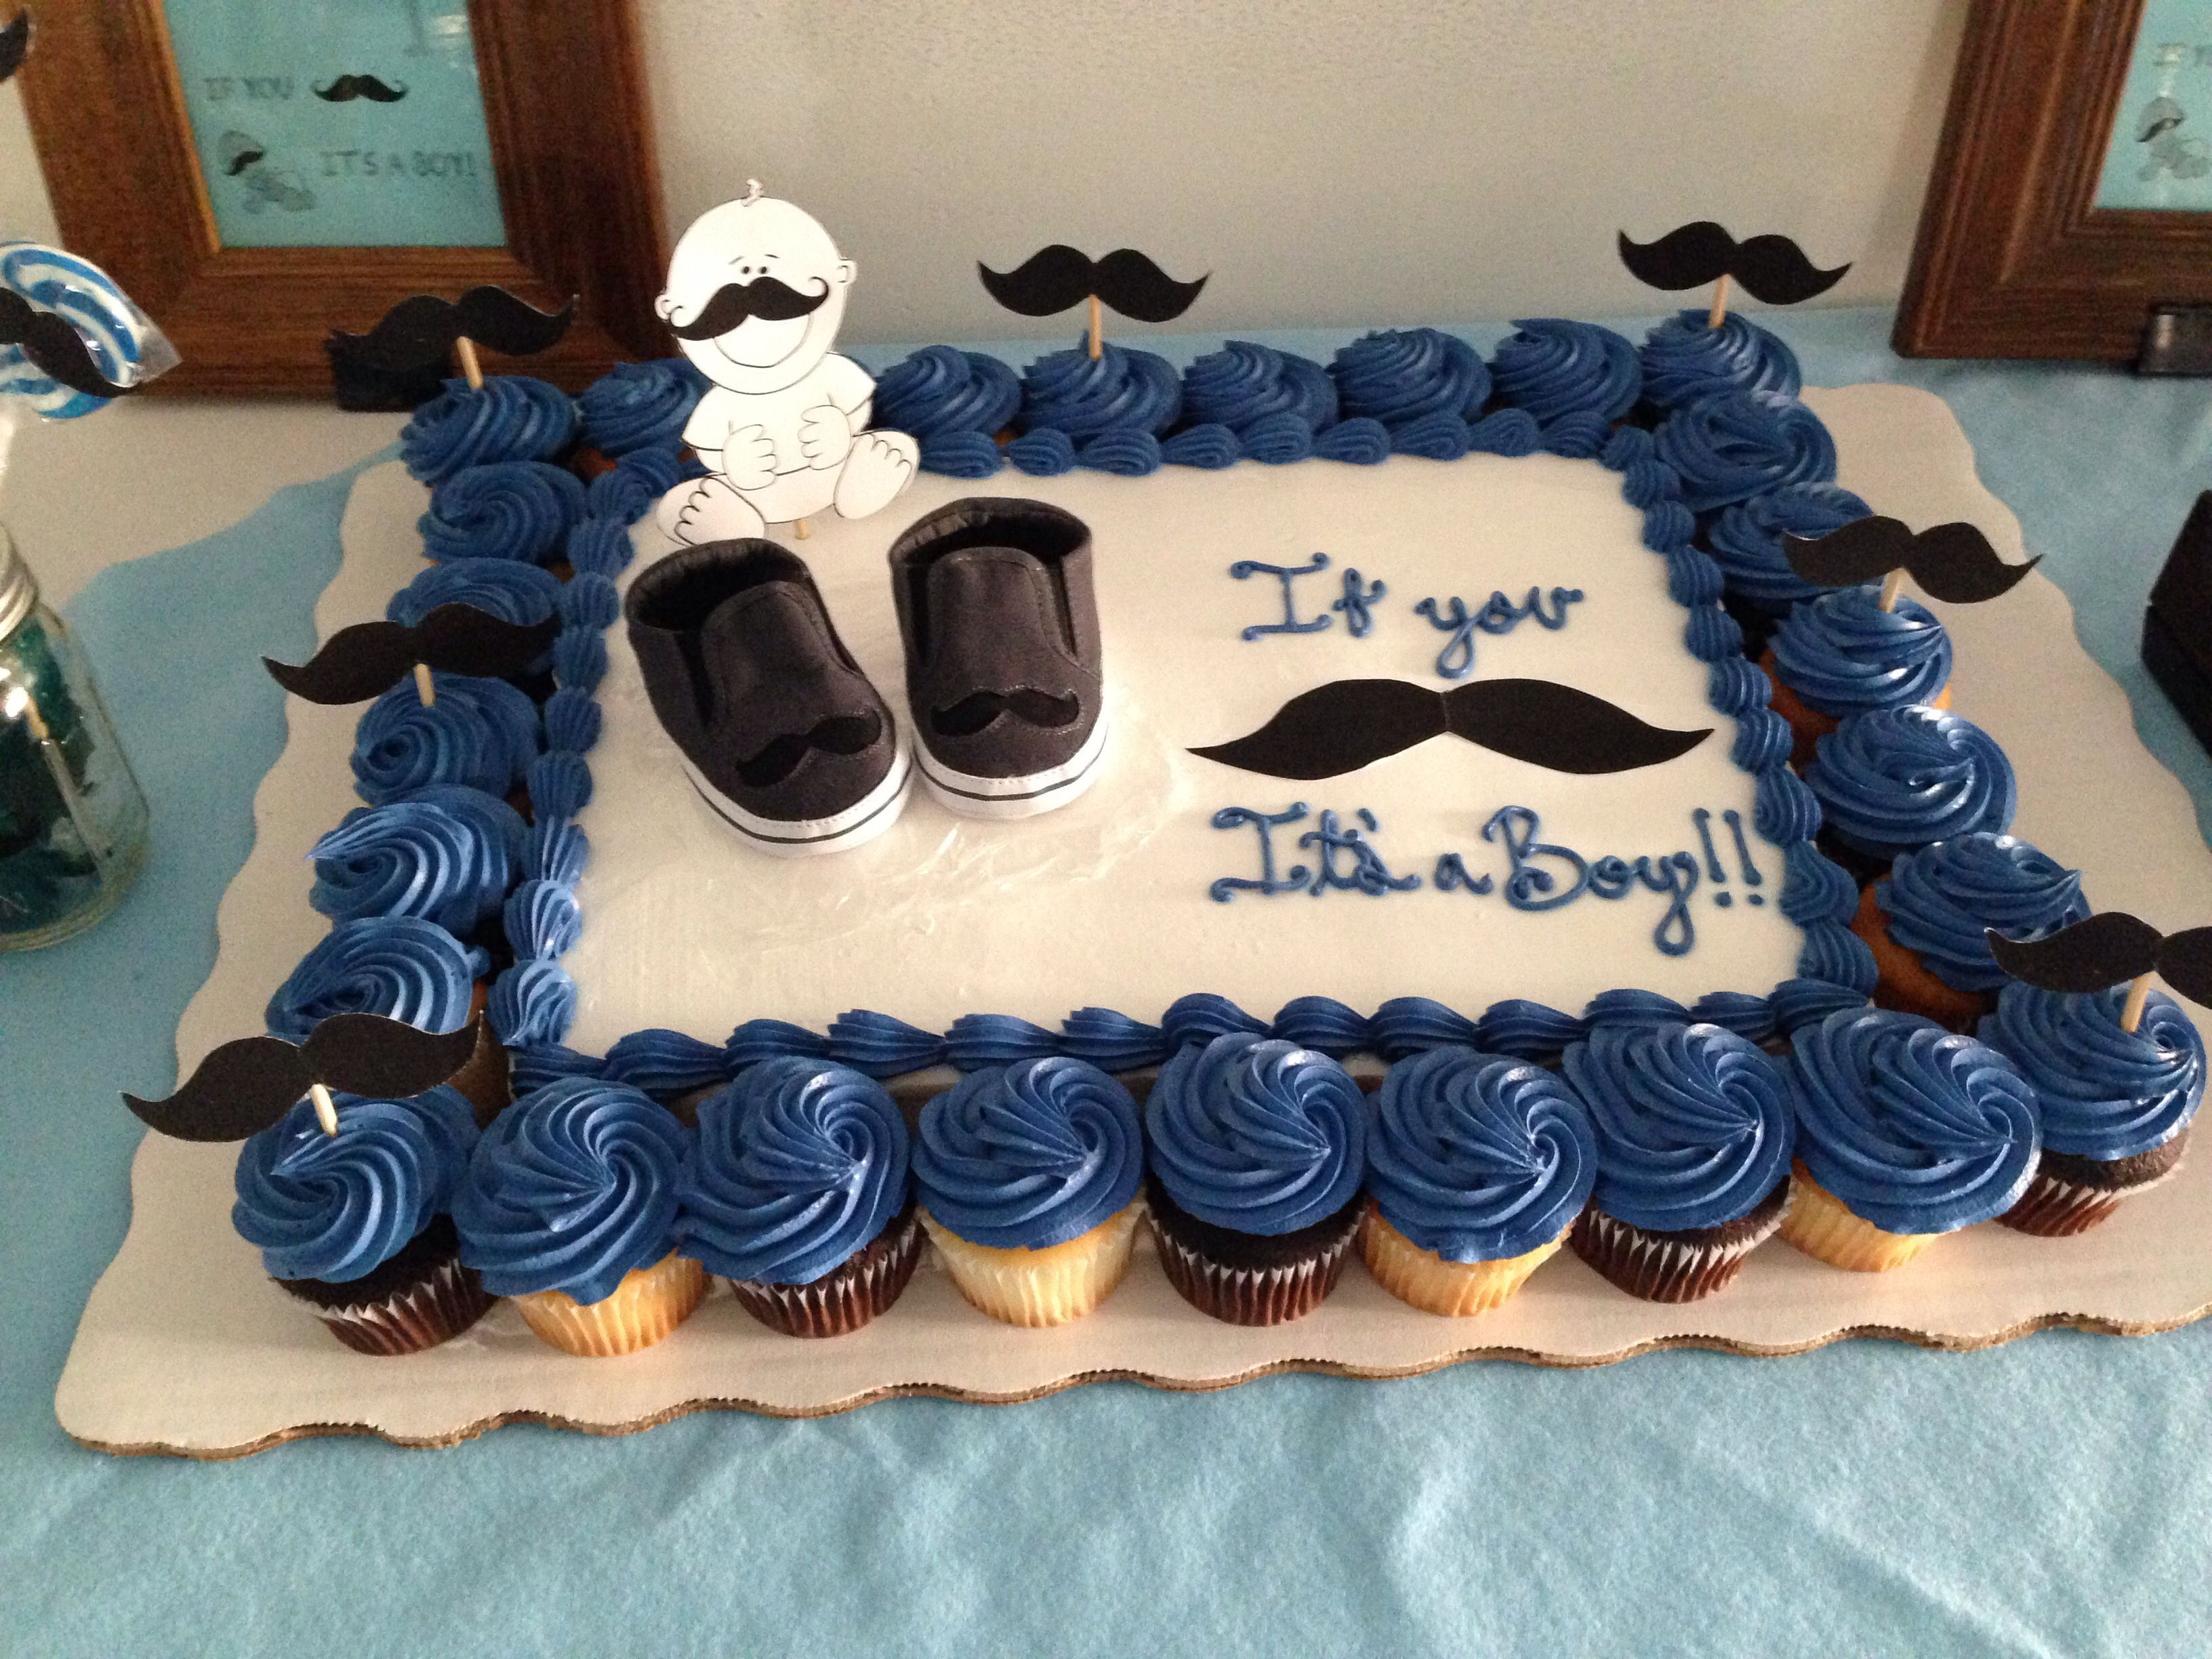 SAMs Club Sheet Cake With Target Baby Shoes And Cut Out Mustaches And Baby.  Sooo Much Cheaper Than Those Fondant Cakes!